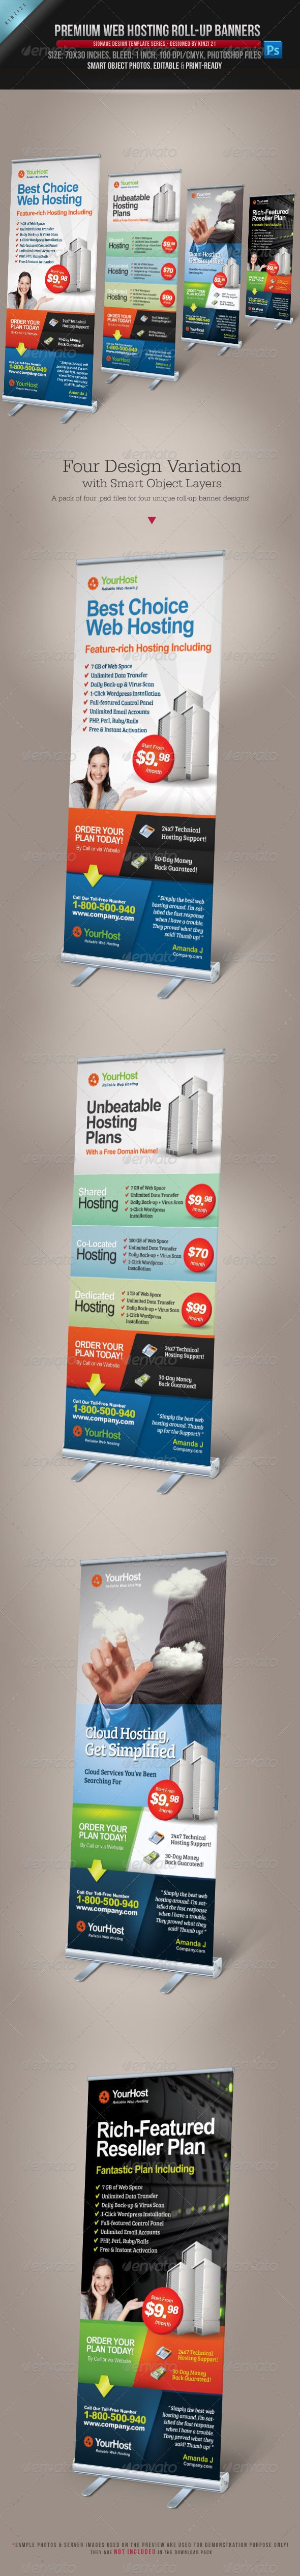 Premium Web Hosting Roll-up Banners are design templates created for sale on Graphic River. More info of the template and how to get the template sourcefiles can be found on this page, http://graphicriver.net/item/premium-web-hosting-rollup-banners/4571155?r=kinzi21